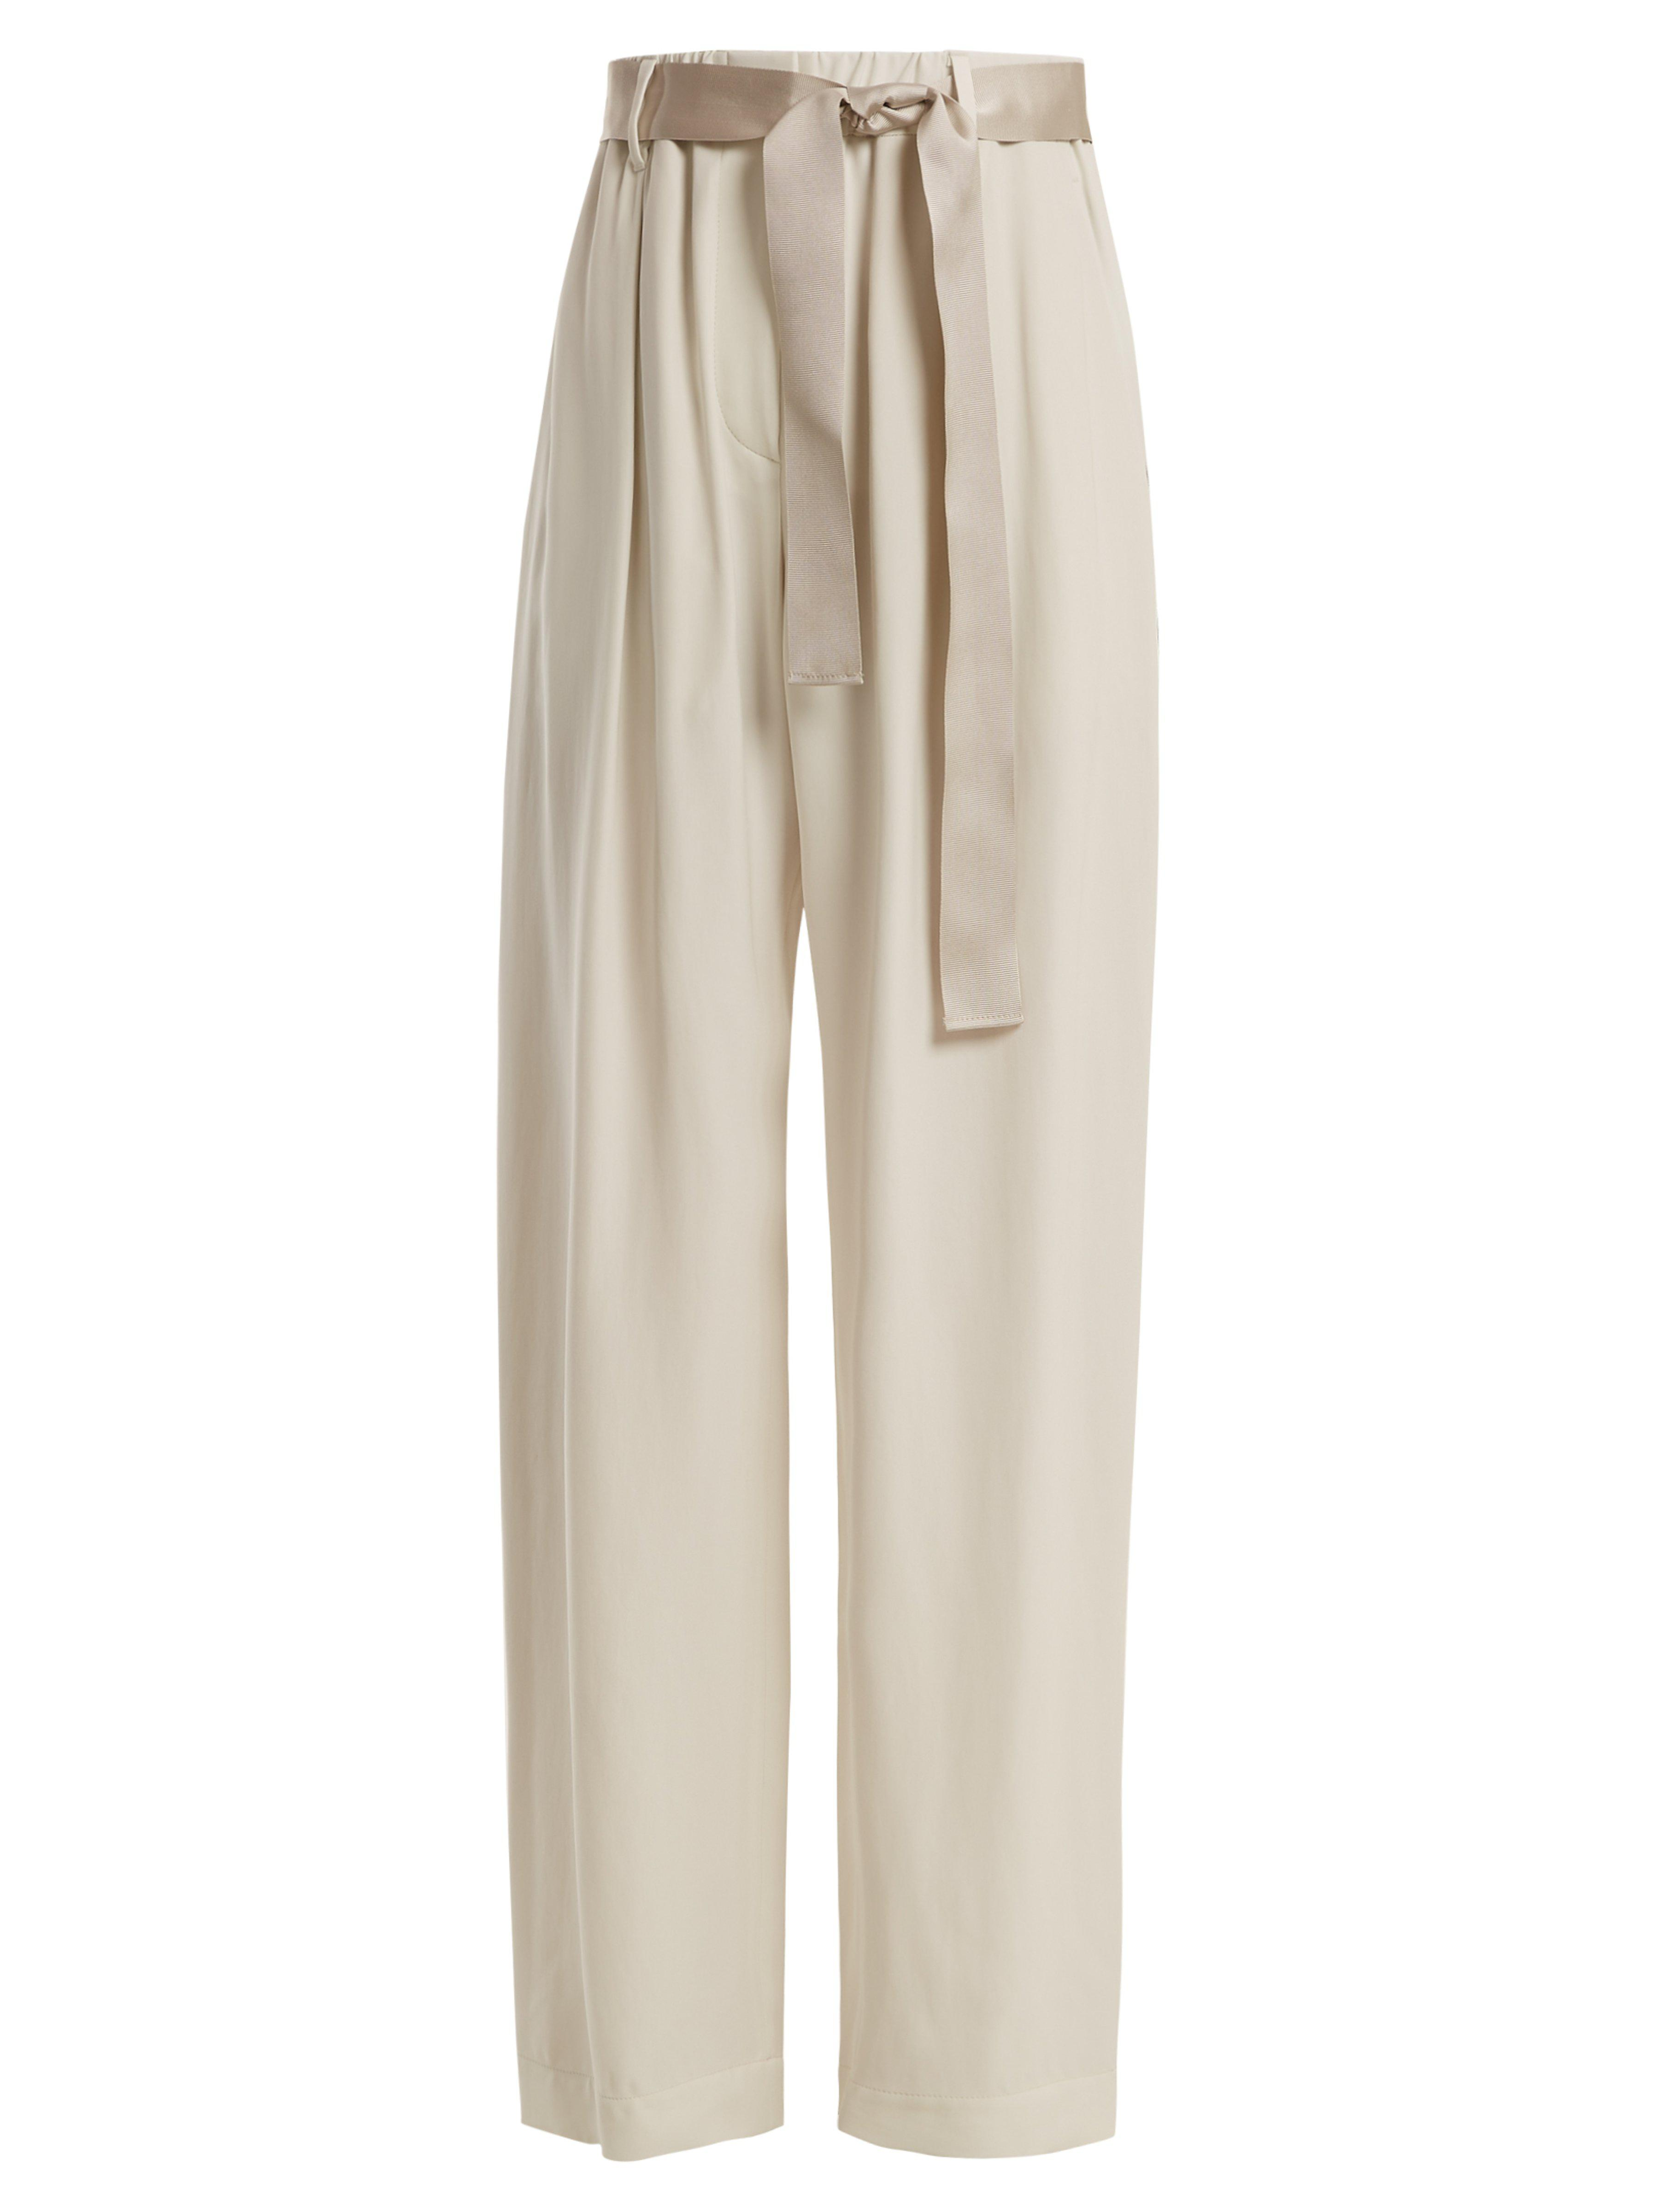 c33c775cd39aa Brunello Cucinelli - White Bead Embellished Wide Leg Trousers - Lyst. View  fullscreen